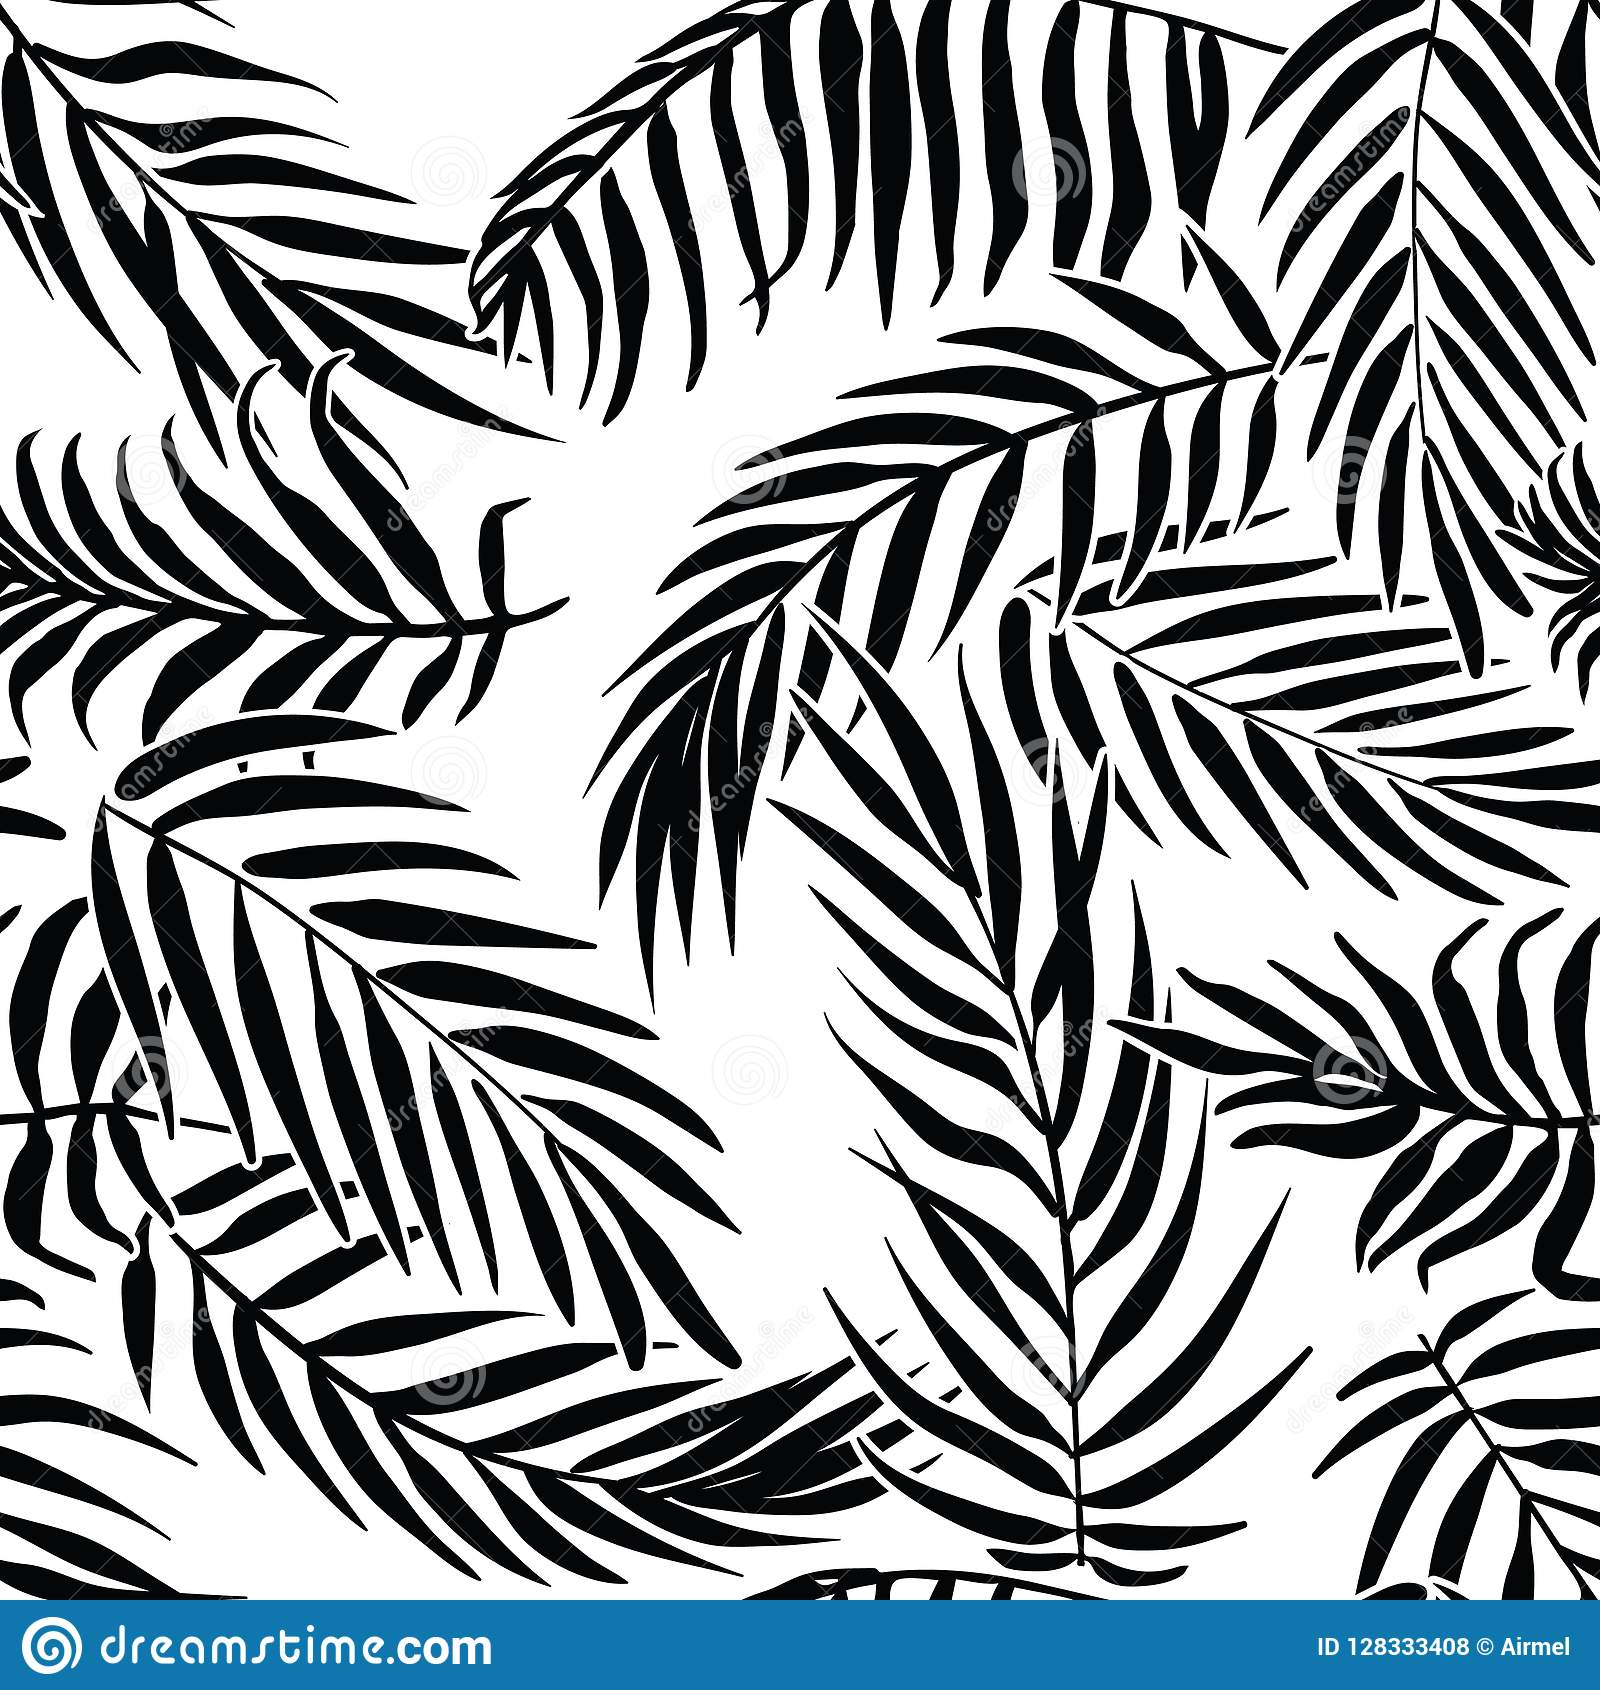 Black palm leaves on white background. Tropical silhouette seamless vector pattern.